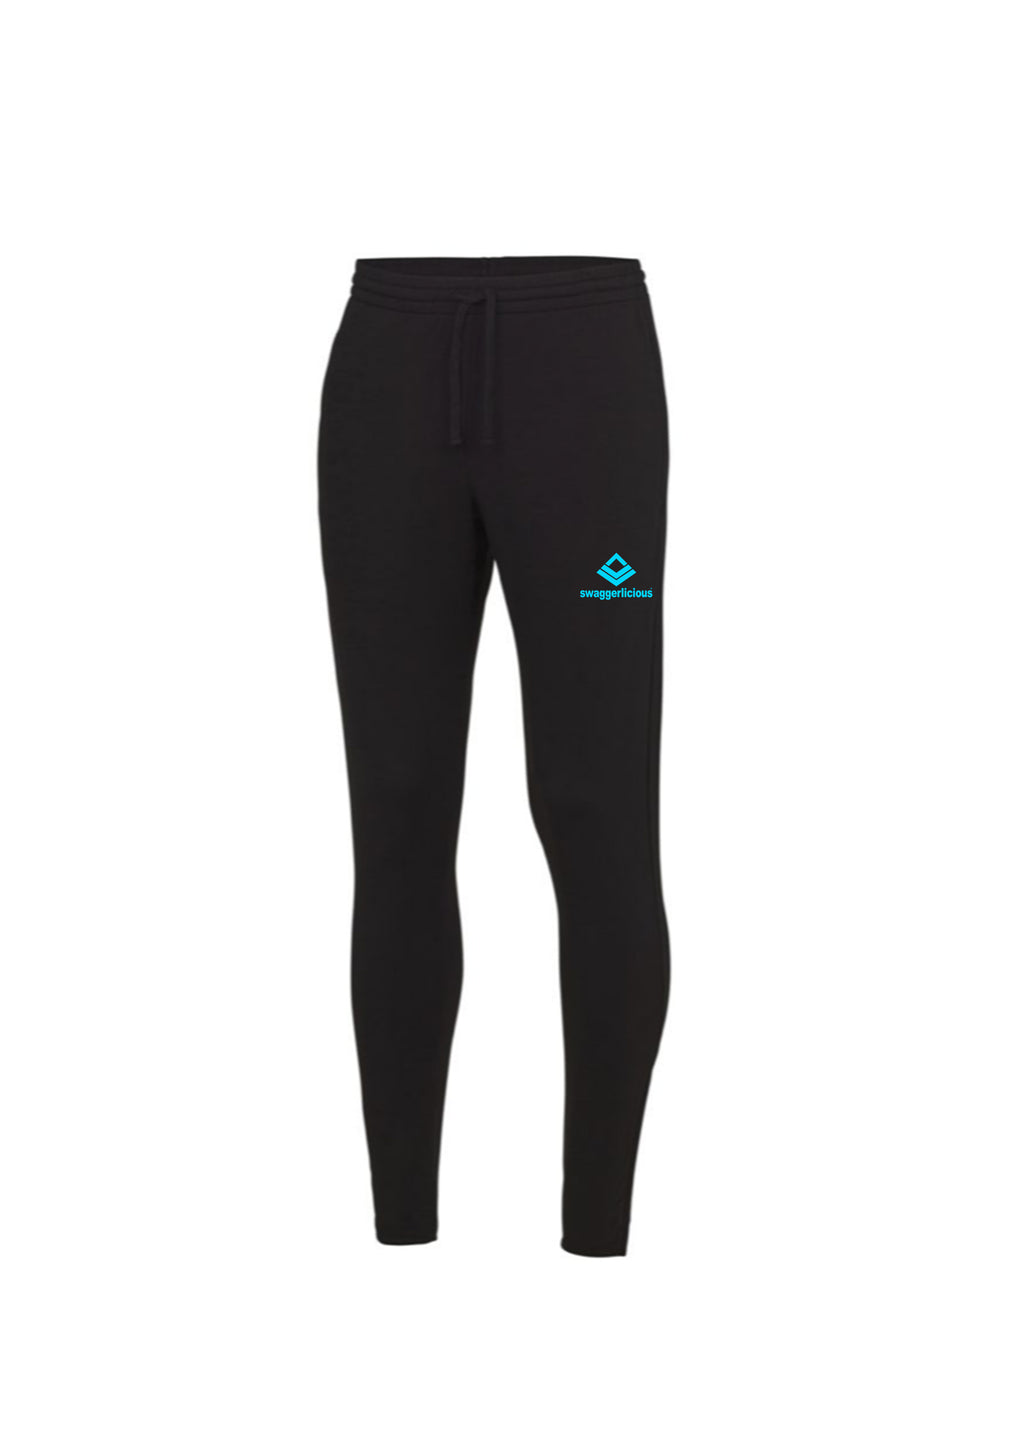 Swaggerlicious Cool Jet Black Jogging Pants with Blue Logo